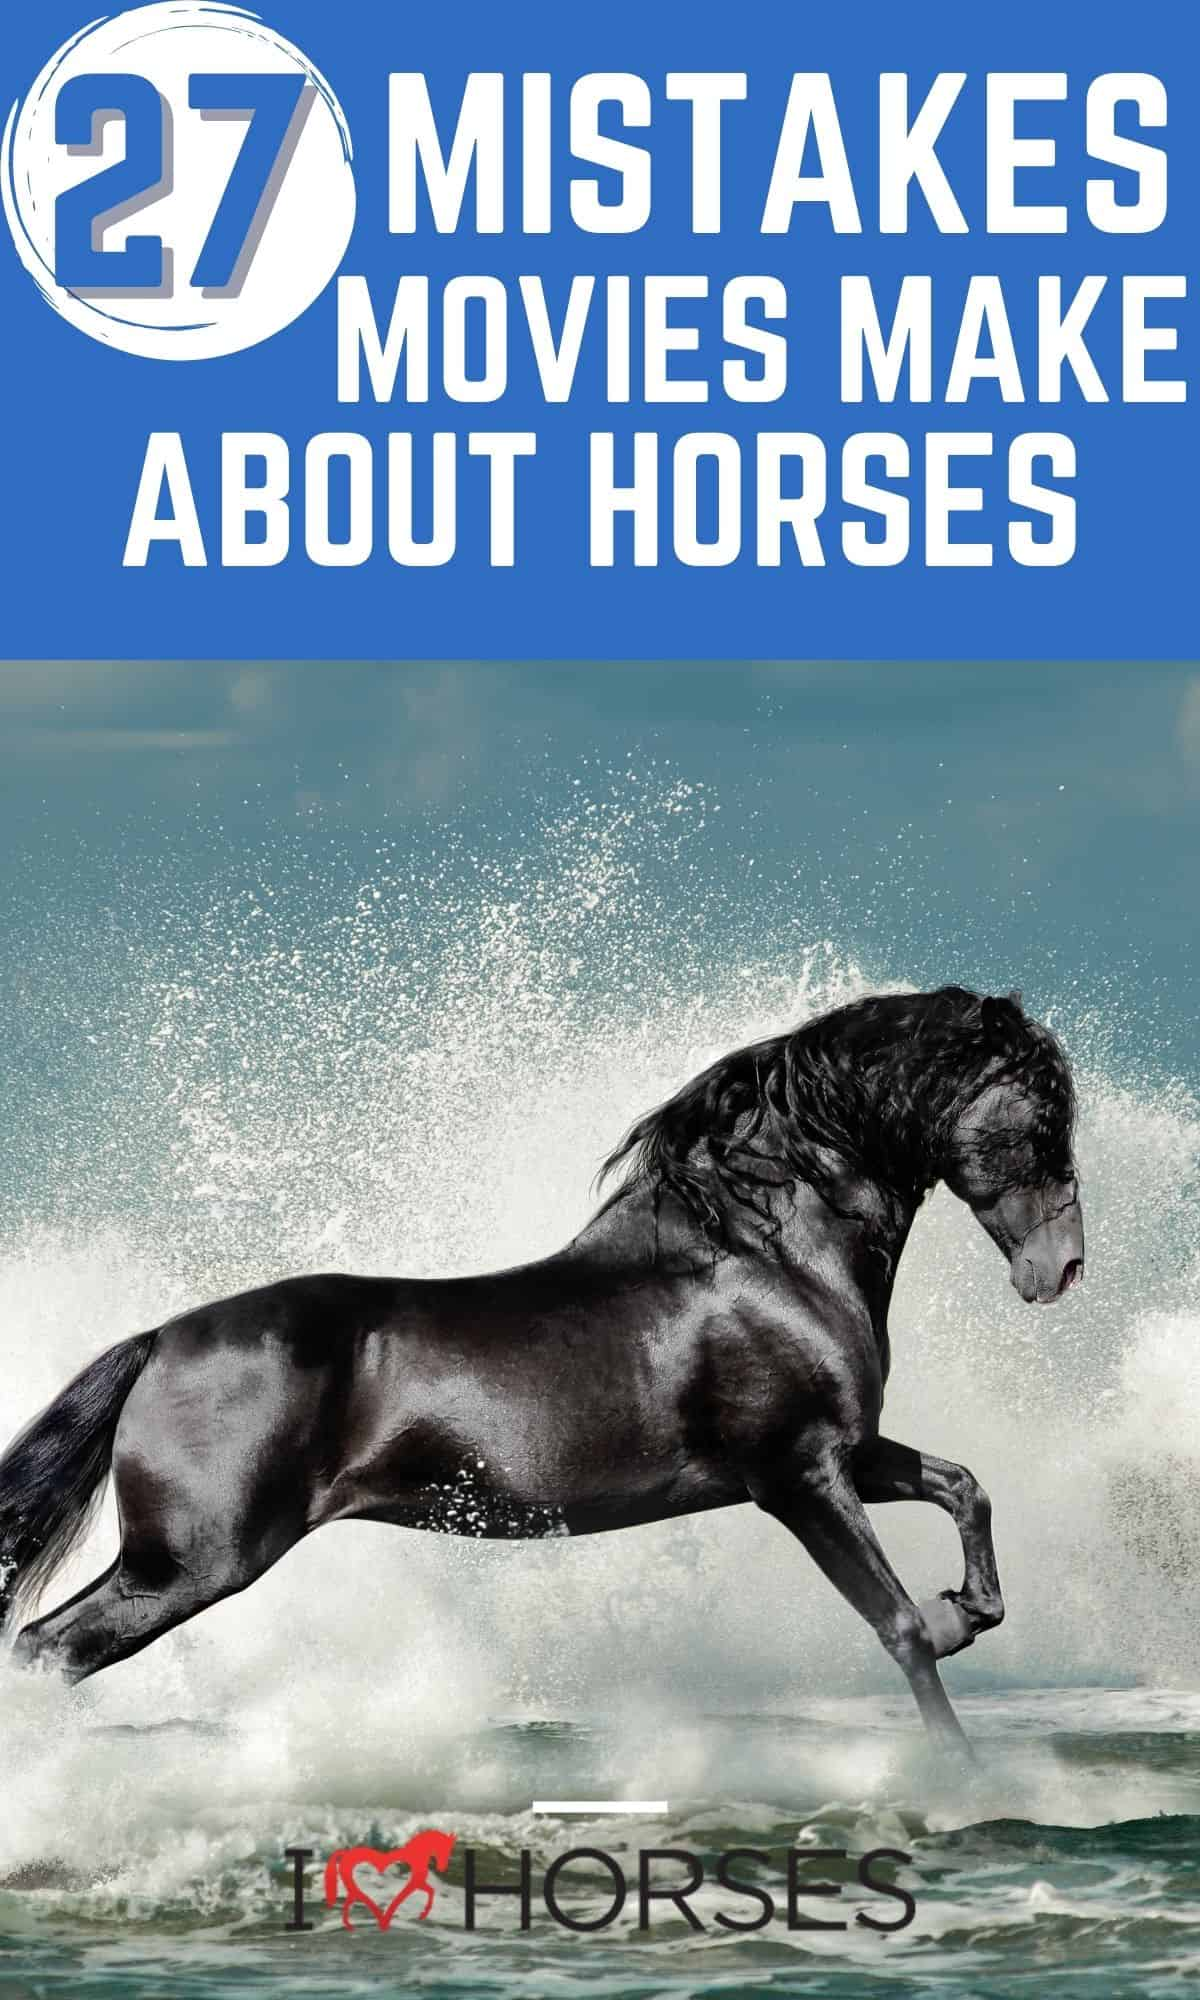 Pinterest image with title in blue overlay and black horse in water below